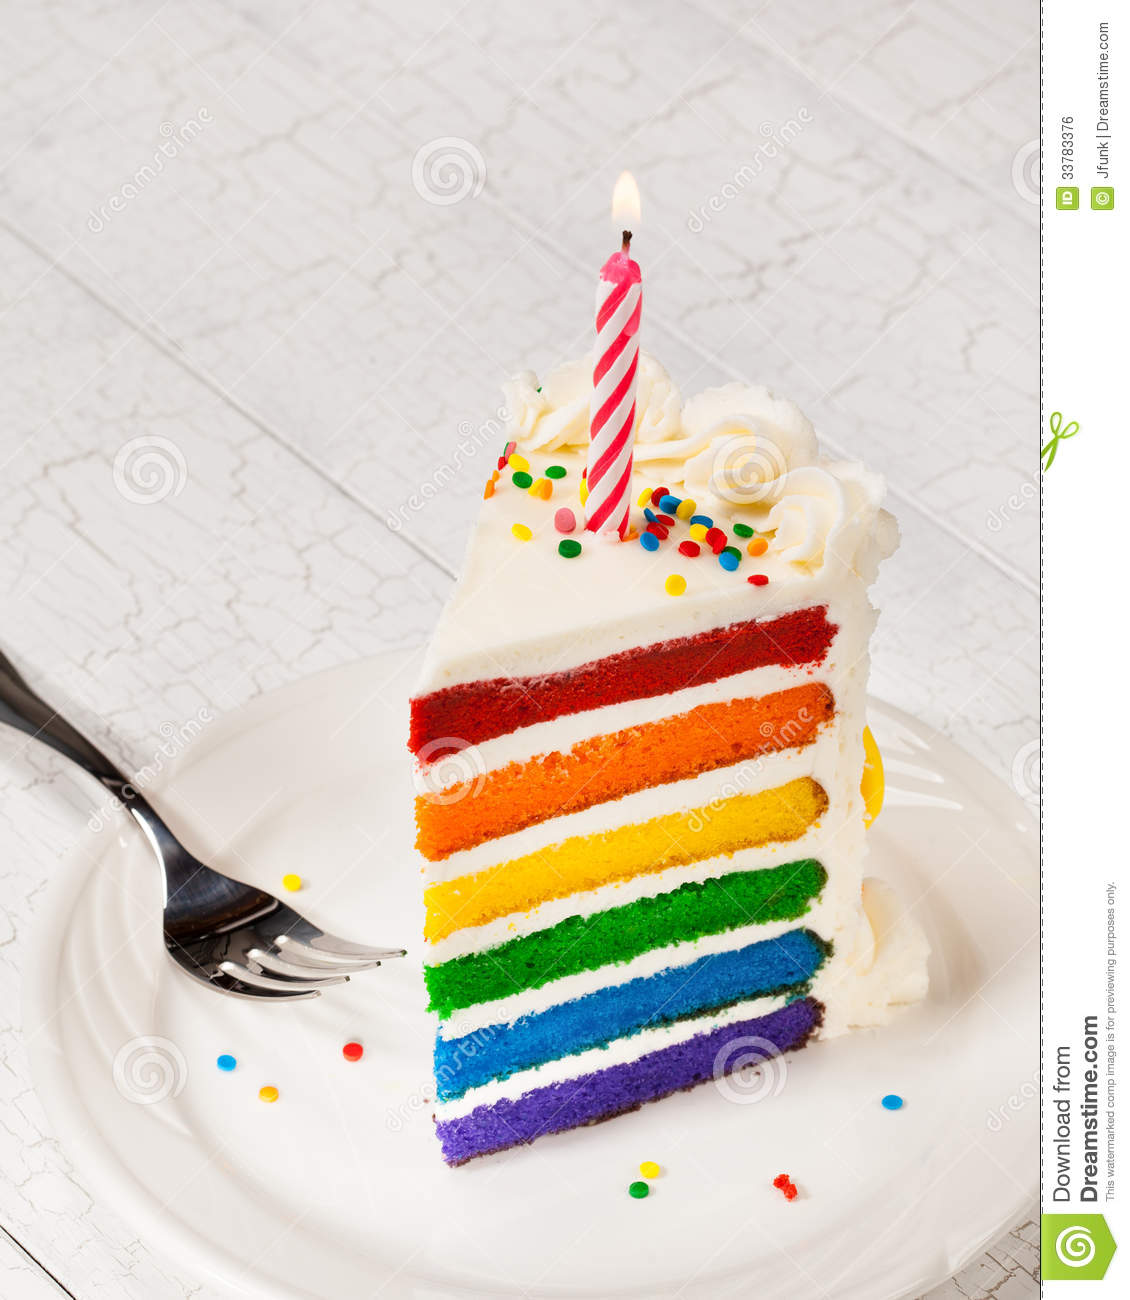 a piece of birthday cake ; slice-birthday-cake-colourful-rainbow-layered-decorated-sprinkles-buttercream-icing-lit-candle-copy-space-33783376